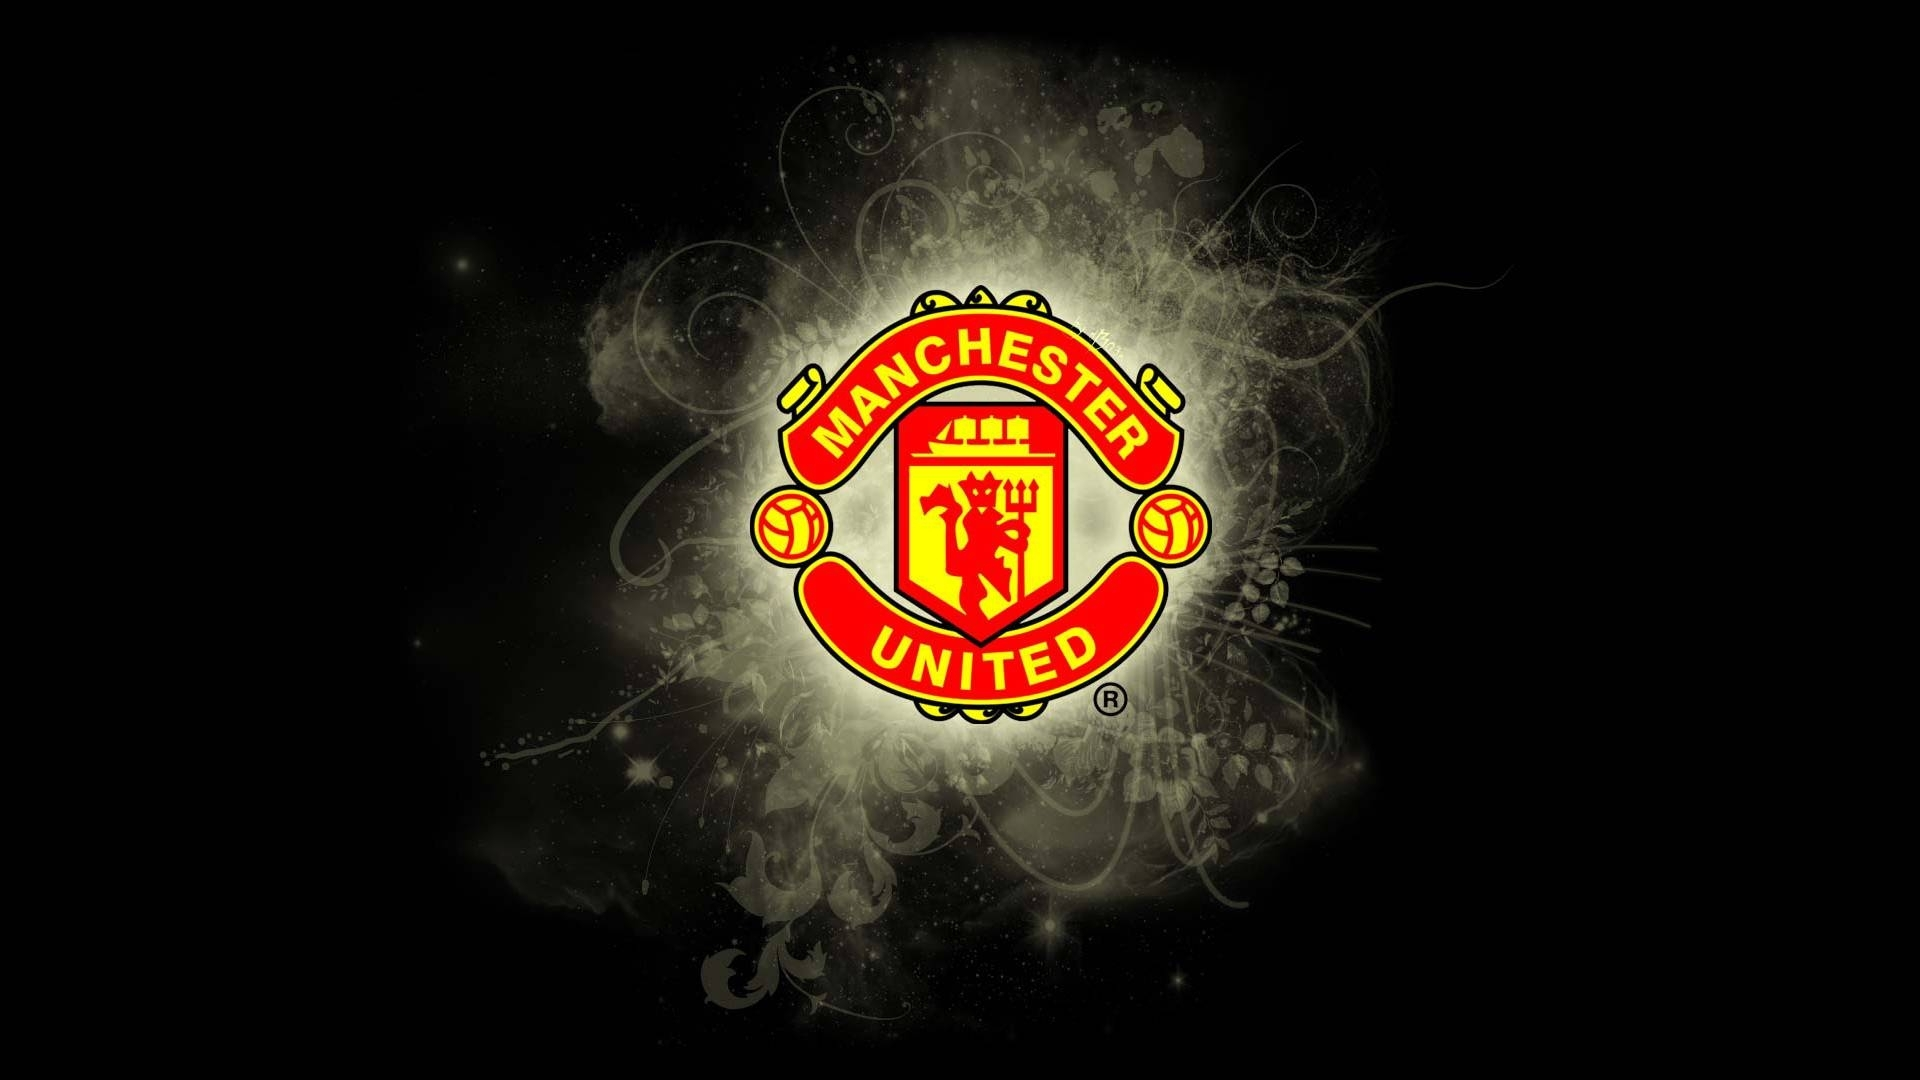 manchester united logo wallpapers hd wallpaper | hd wallpapers